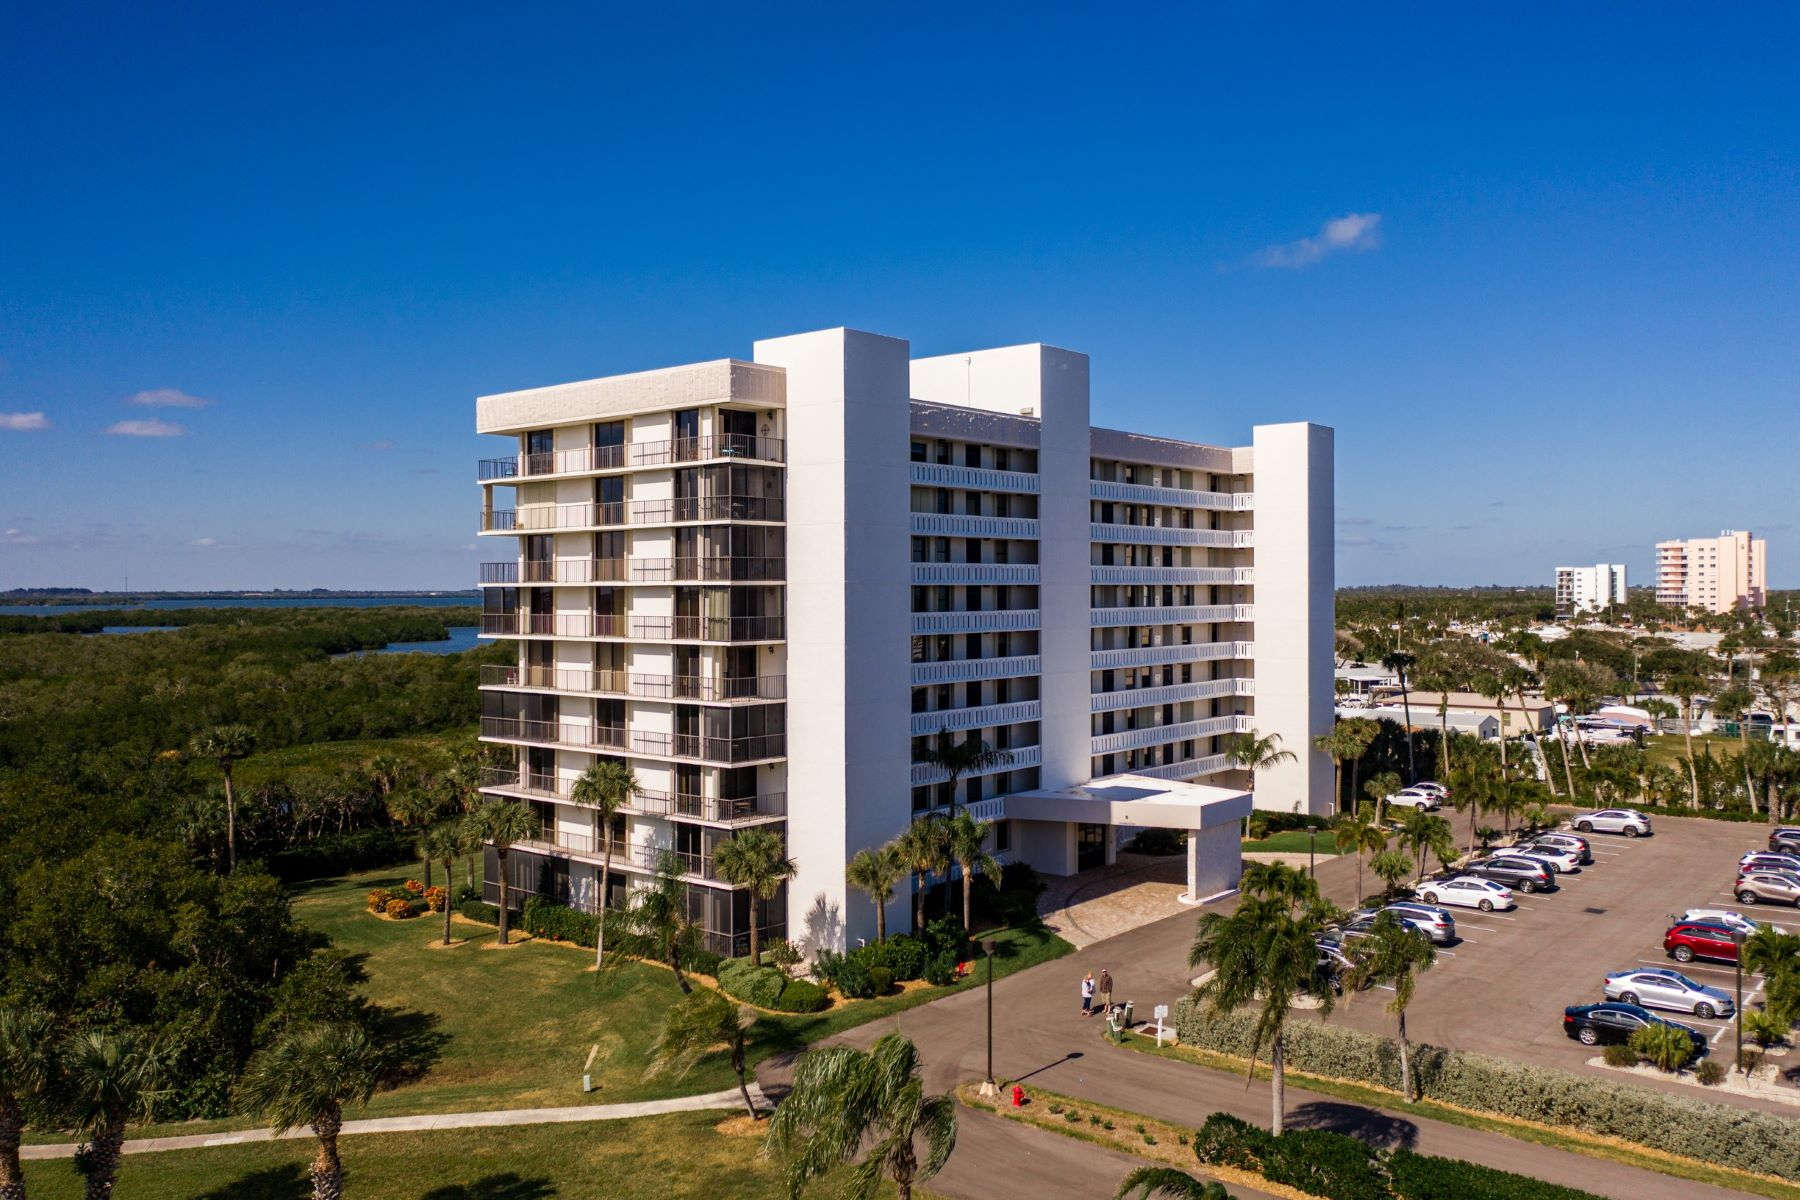 Additional photo for property listing at 5059 N Hwy Highway A1A 5059 N Hwy Highway A1 A 301 Fort Pierce, Florida 34949 United States